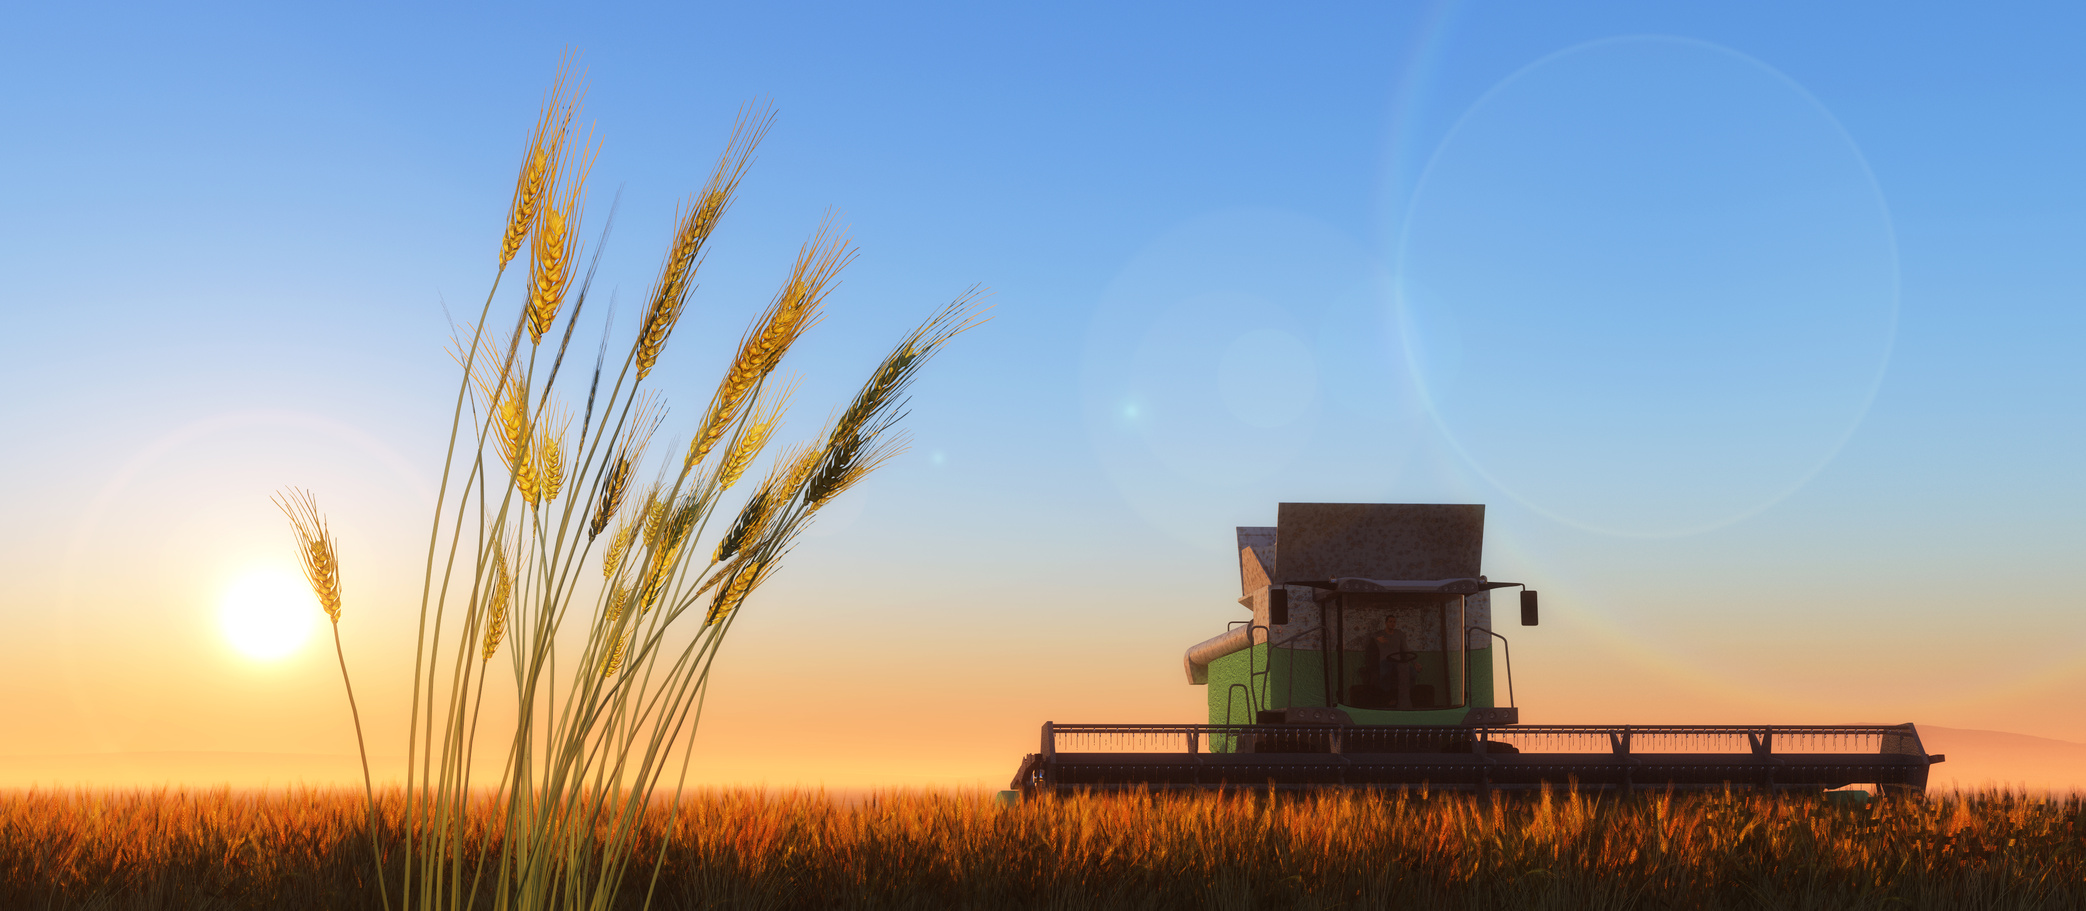 wheat harvester working in wheat field